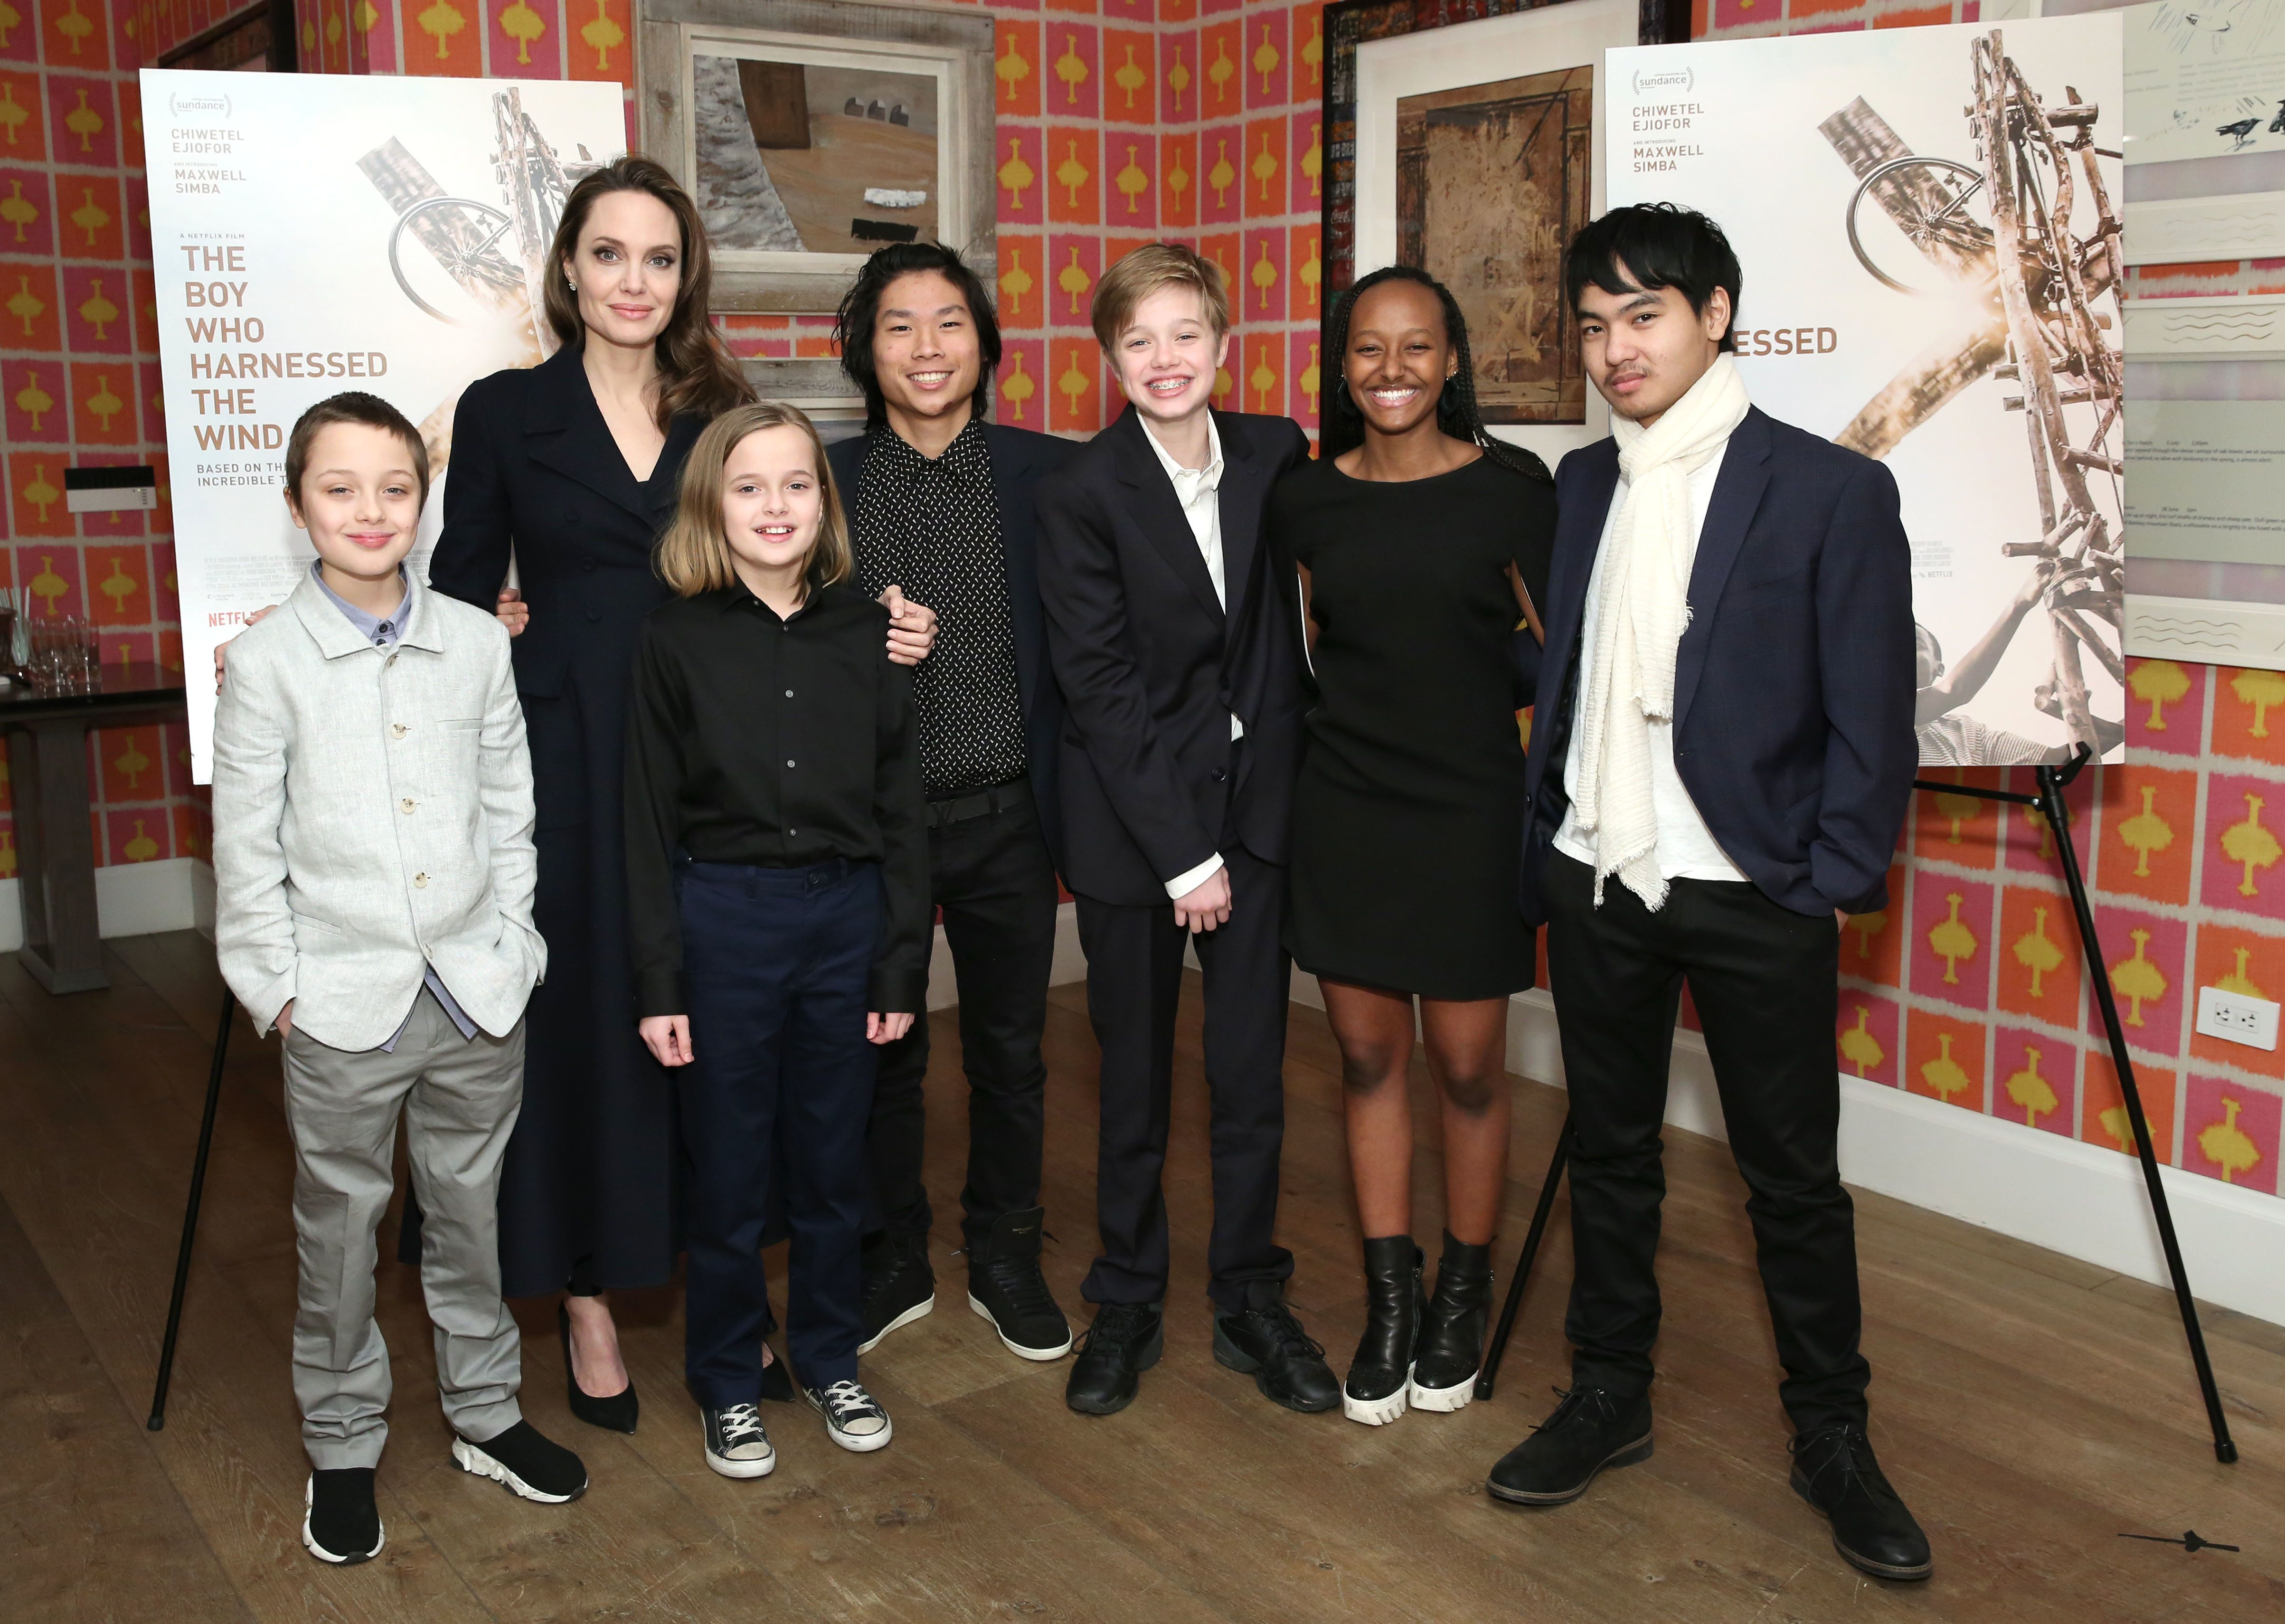 Angelina Jolie with her kids (from left) Knox, Vivienne, Pax, Shiloh, Zahara and Maddox.